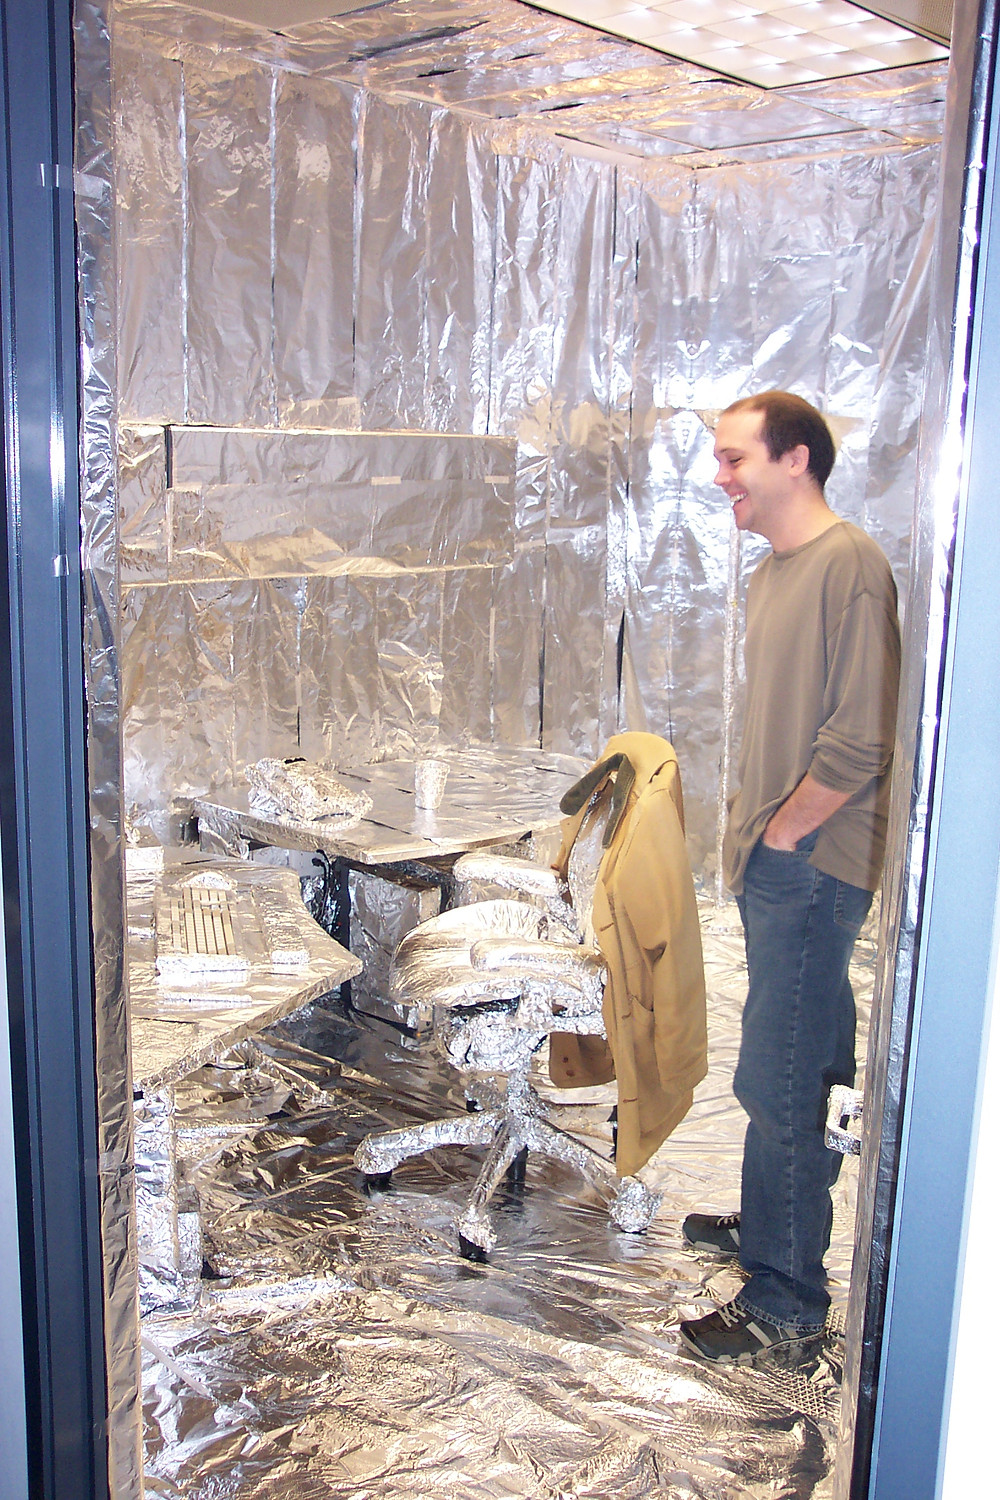 The Sims Aluminum Foil Office Prank